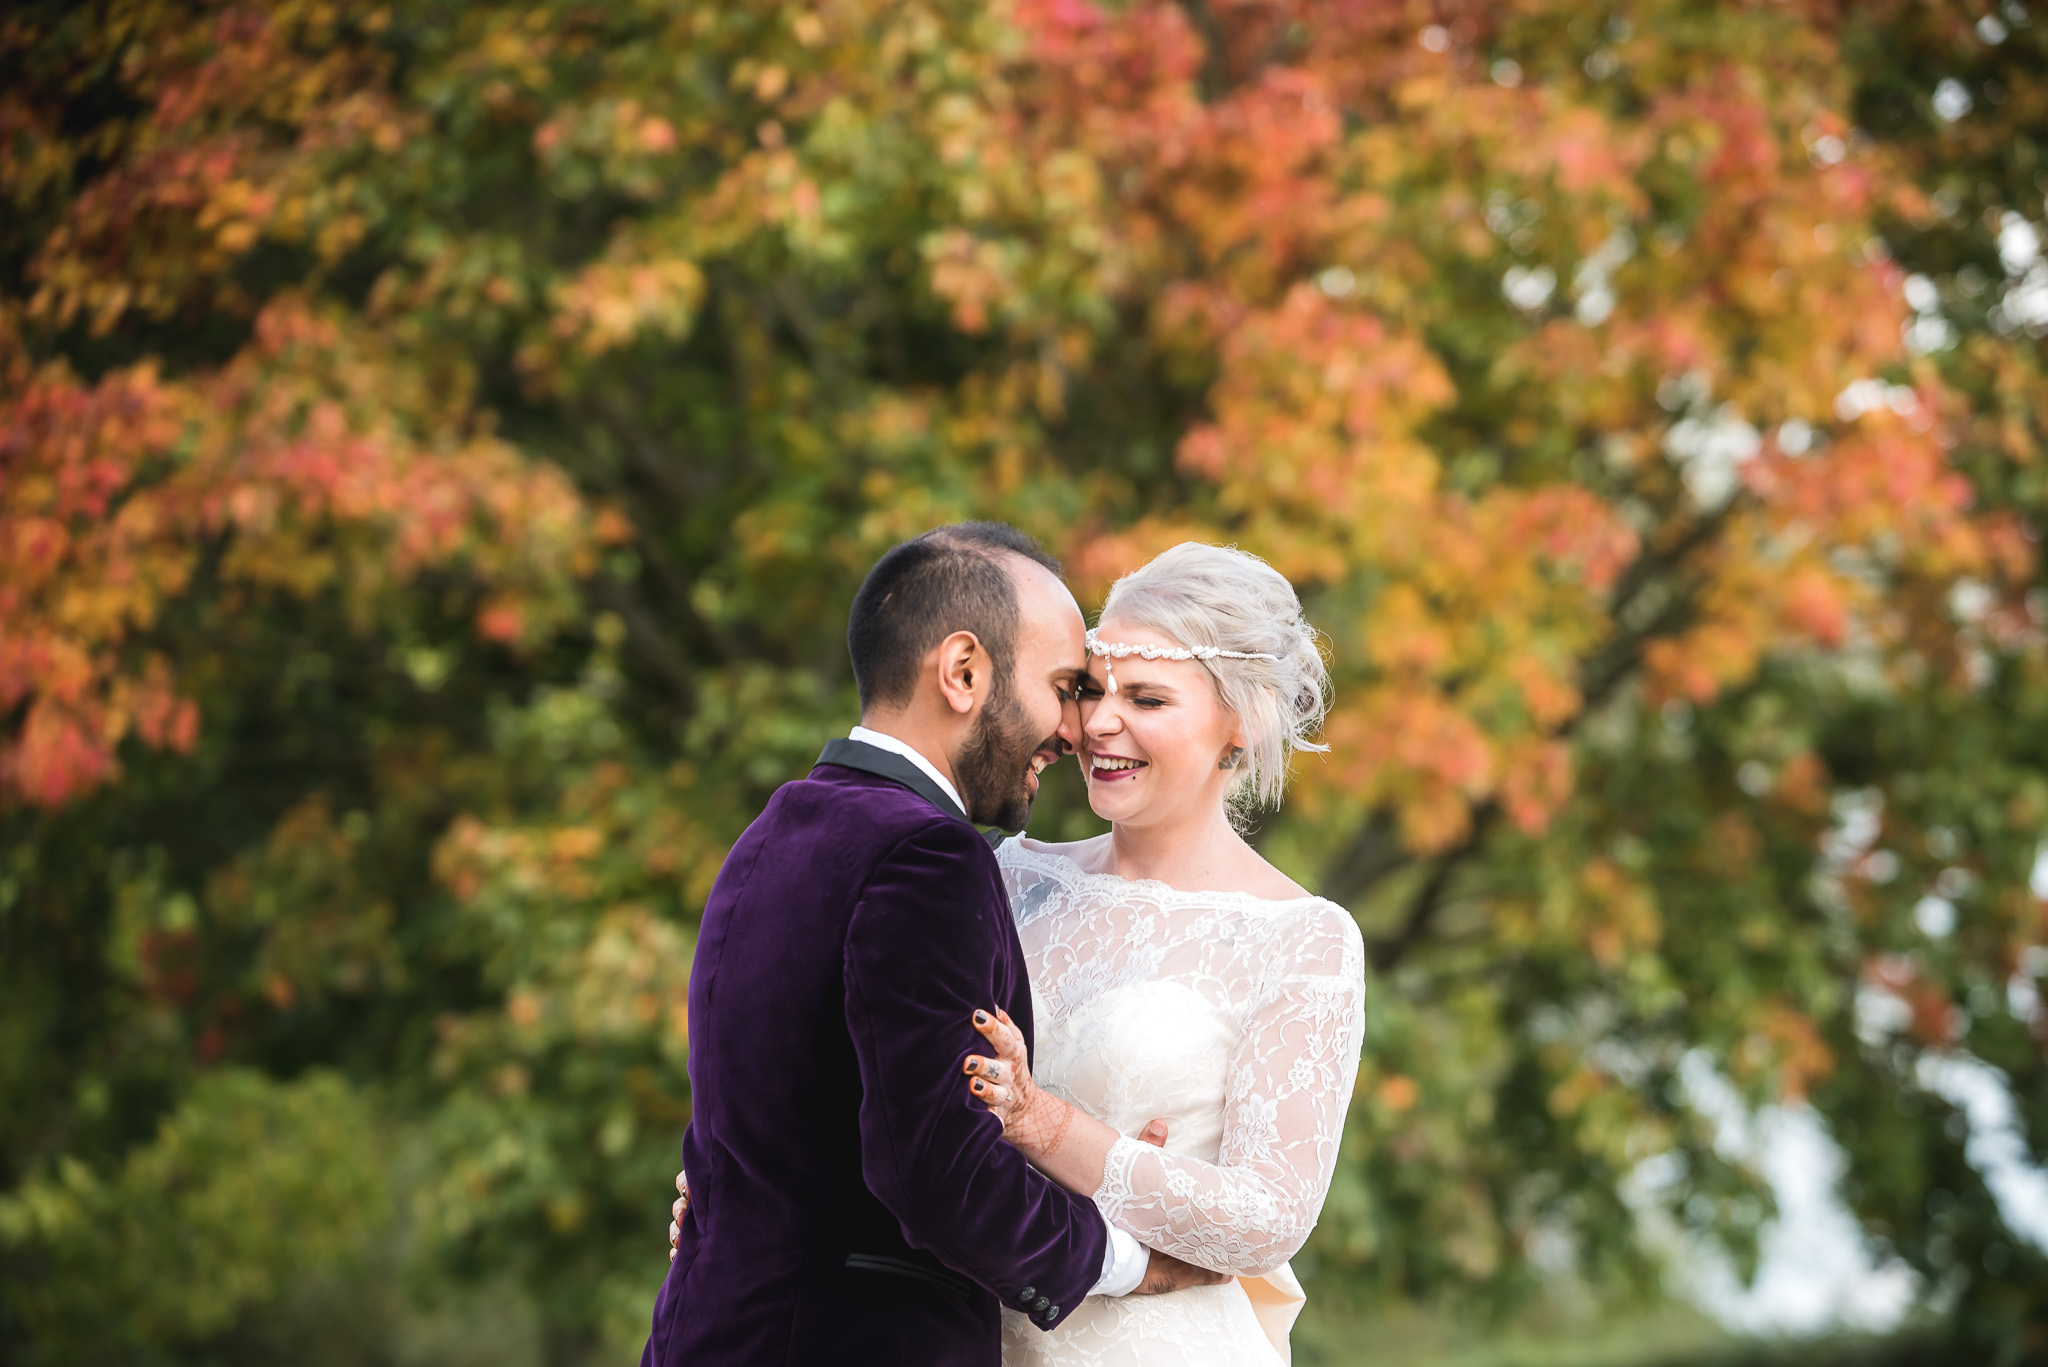 The Granary Estates wedding photography – Hannah & Neel